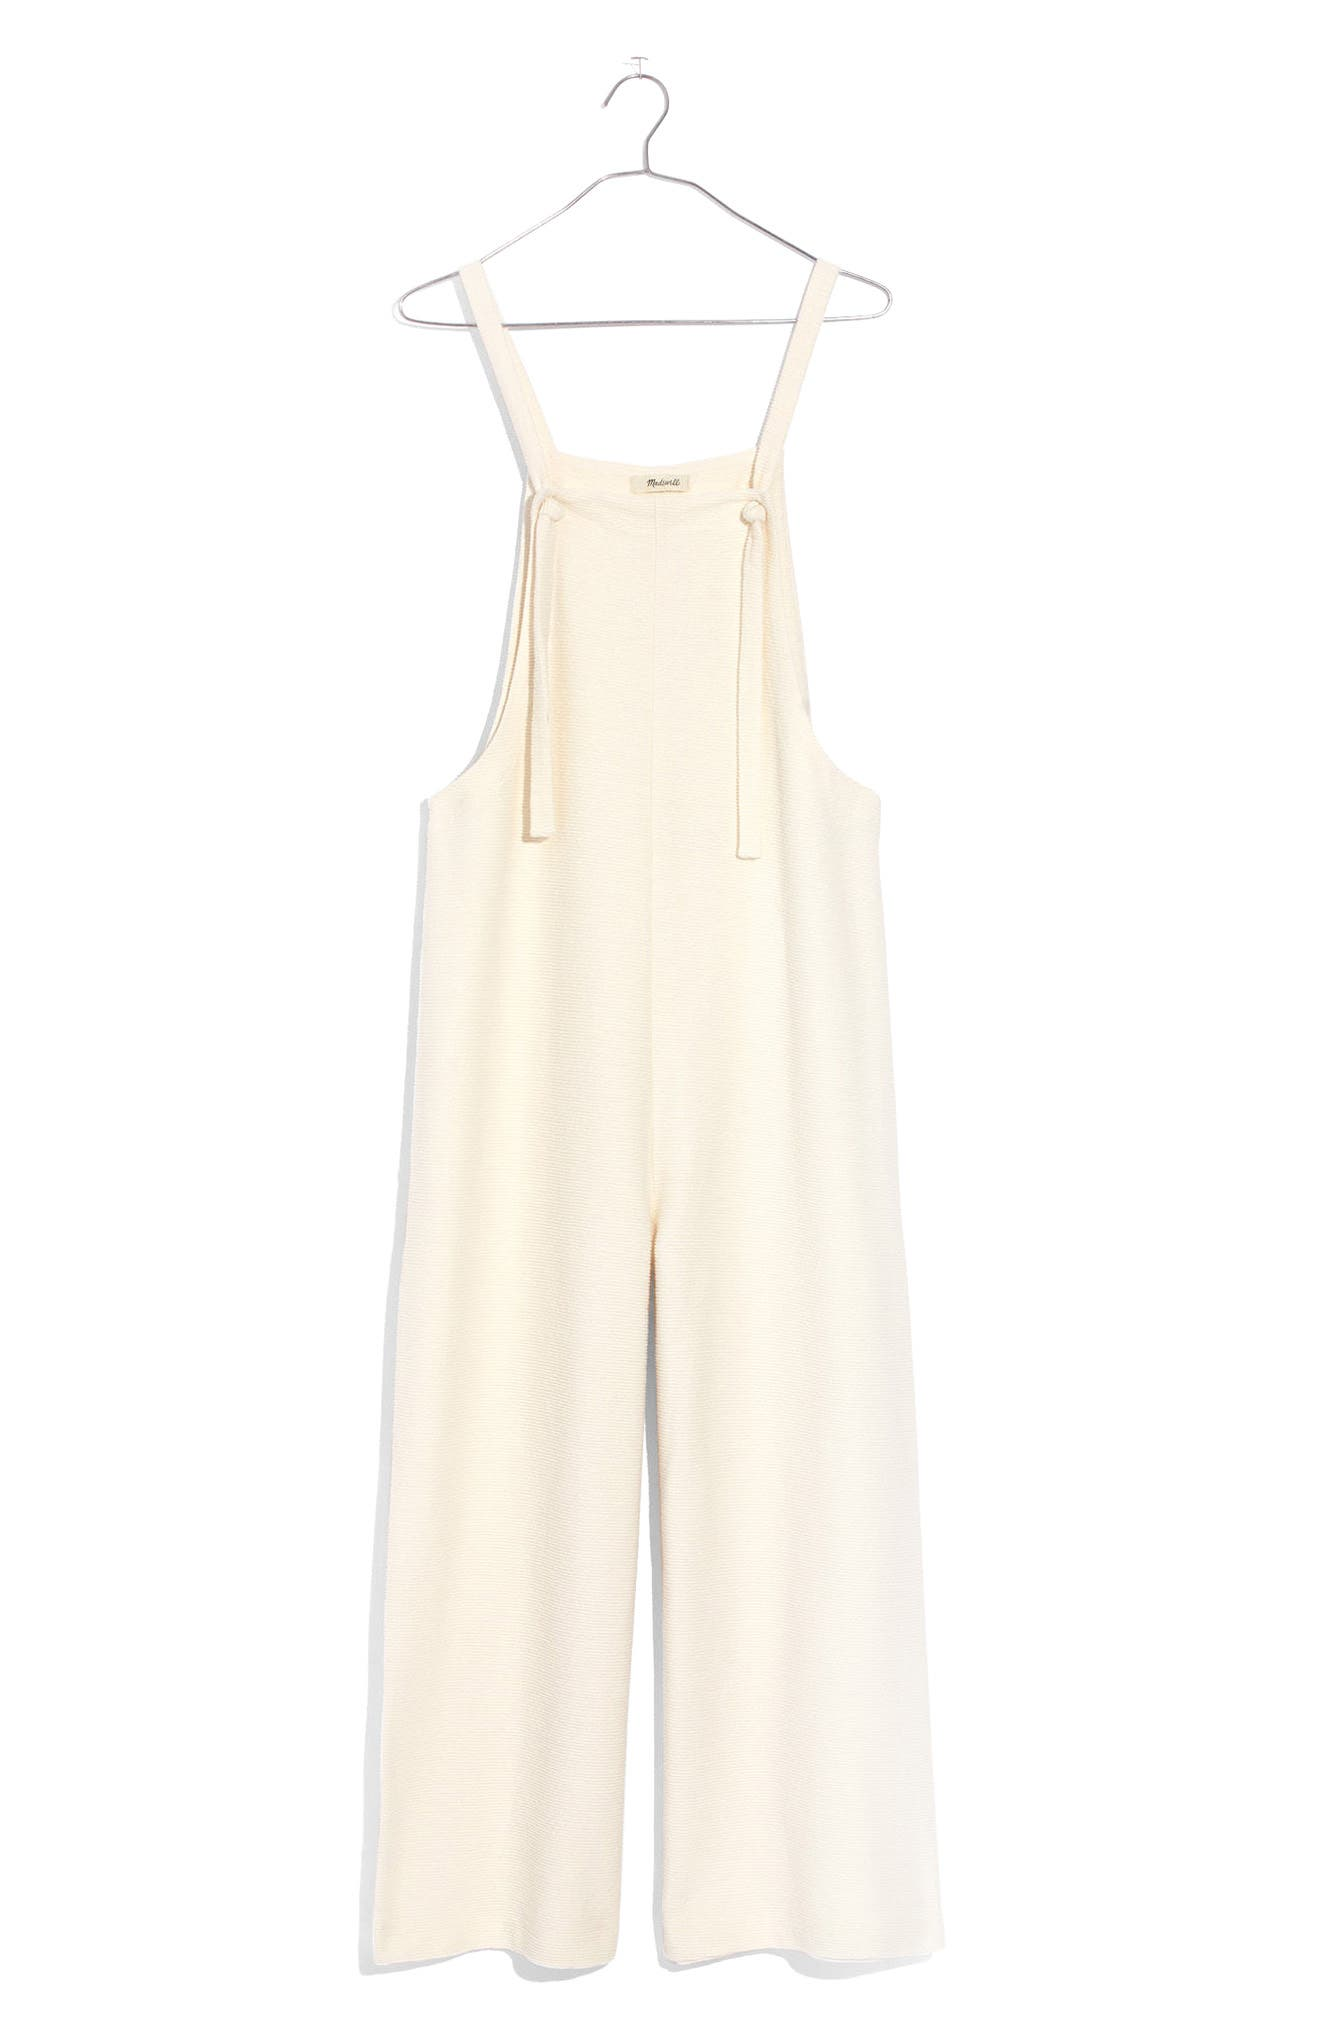 Madewell Tie Strap Knit Overalls